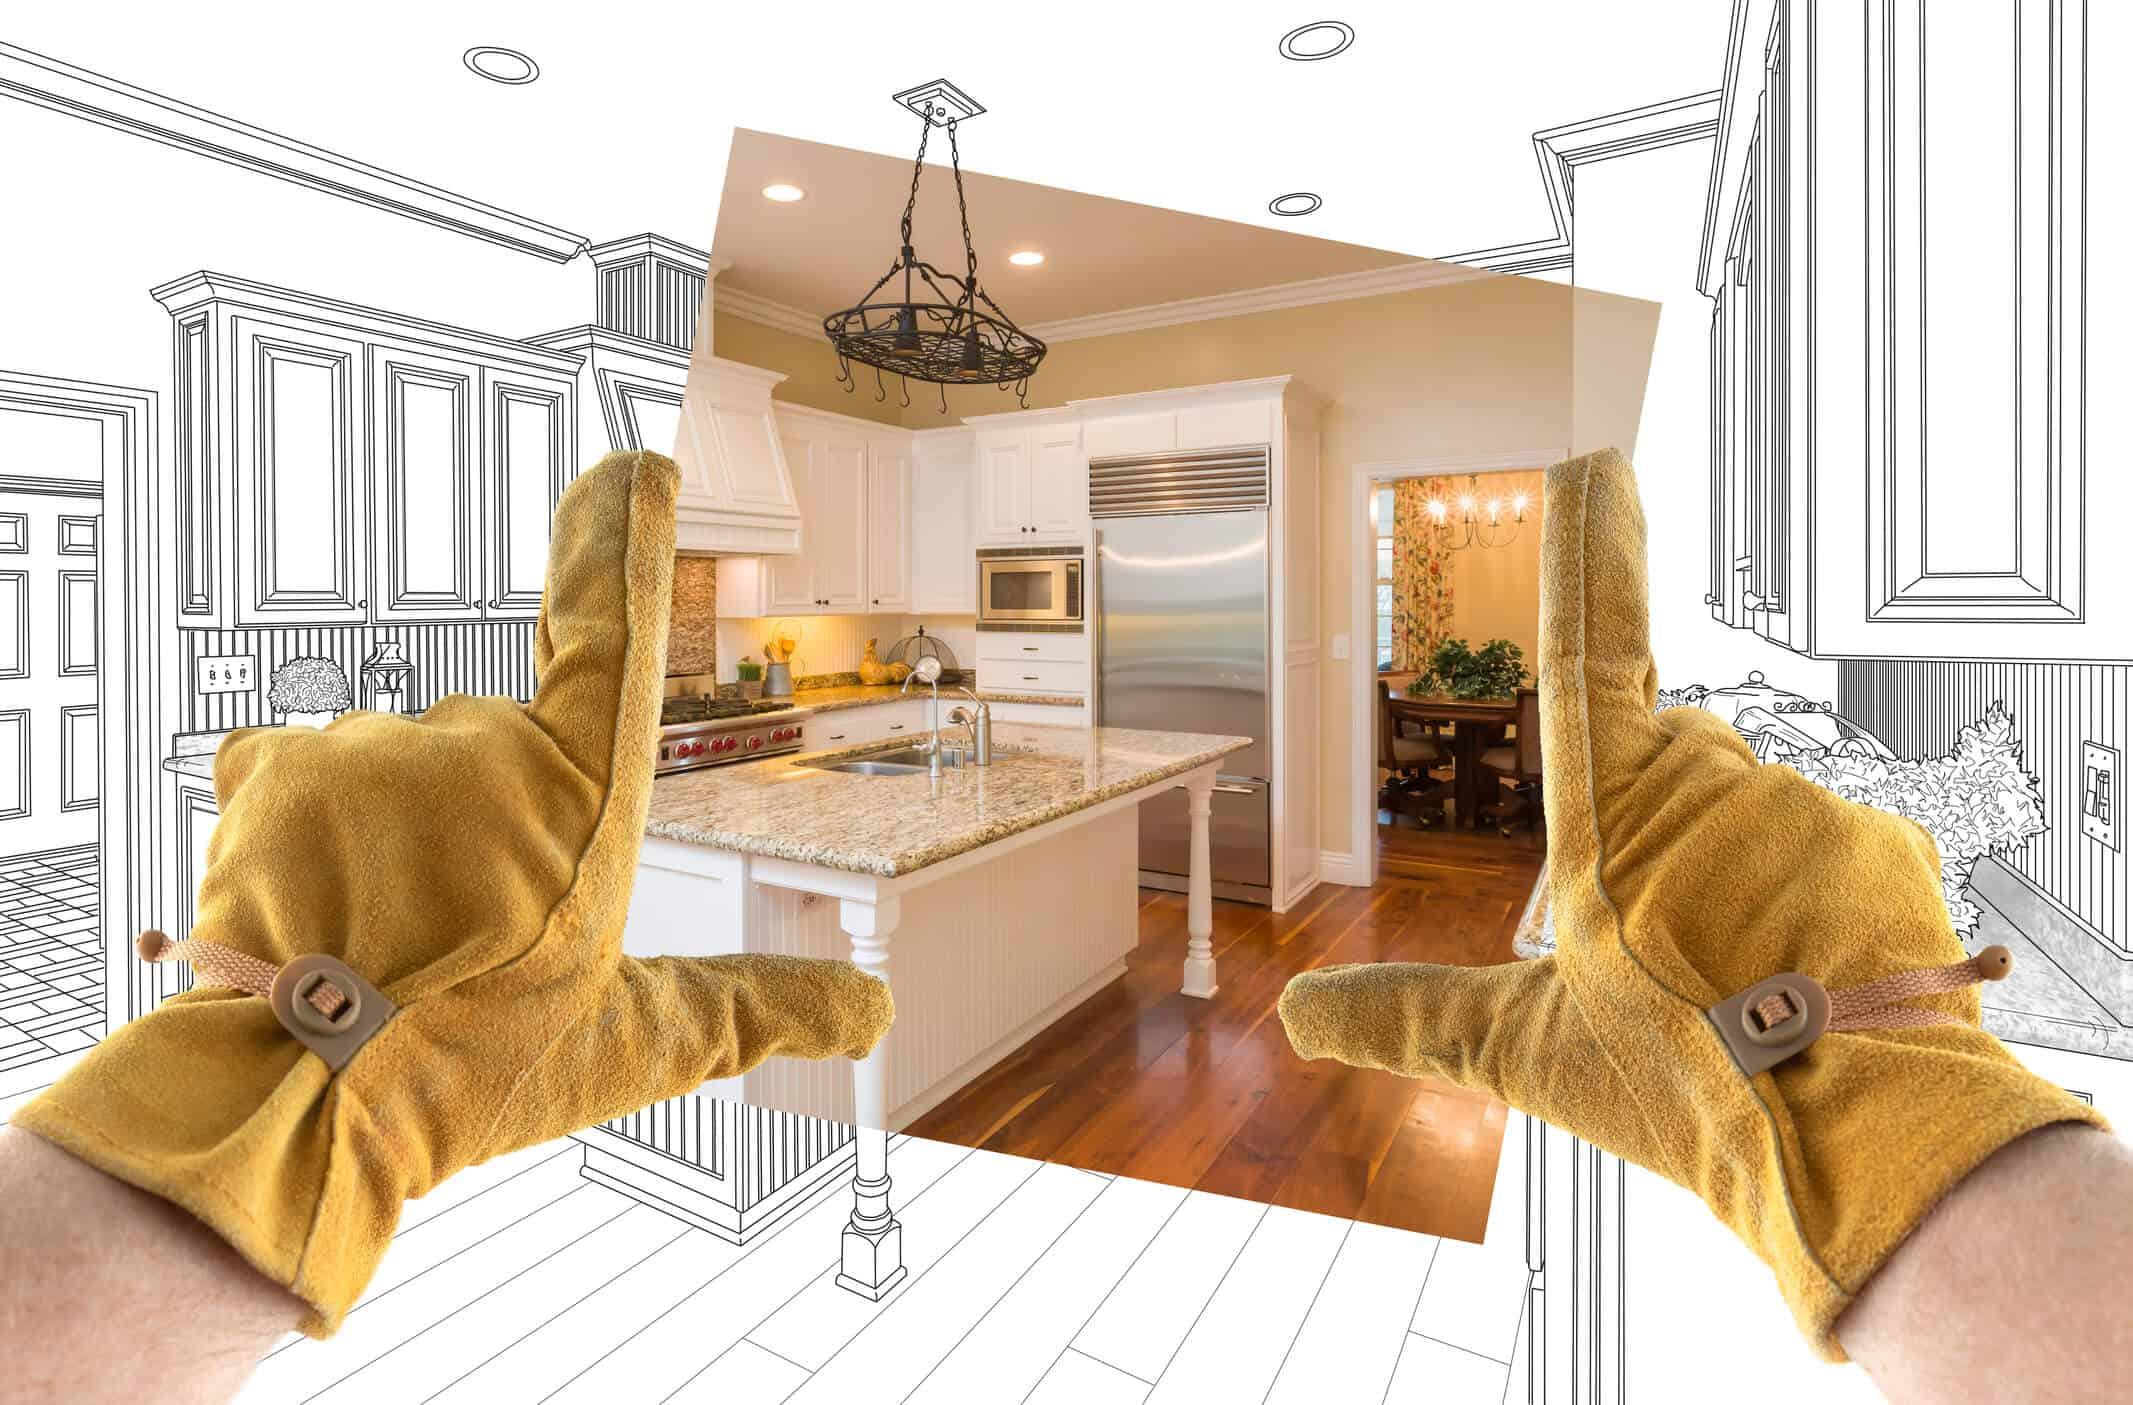 should-you-renovate-your-home-before-selling